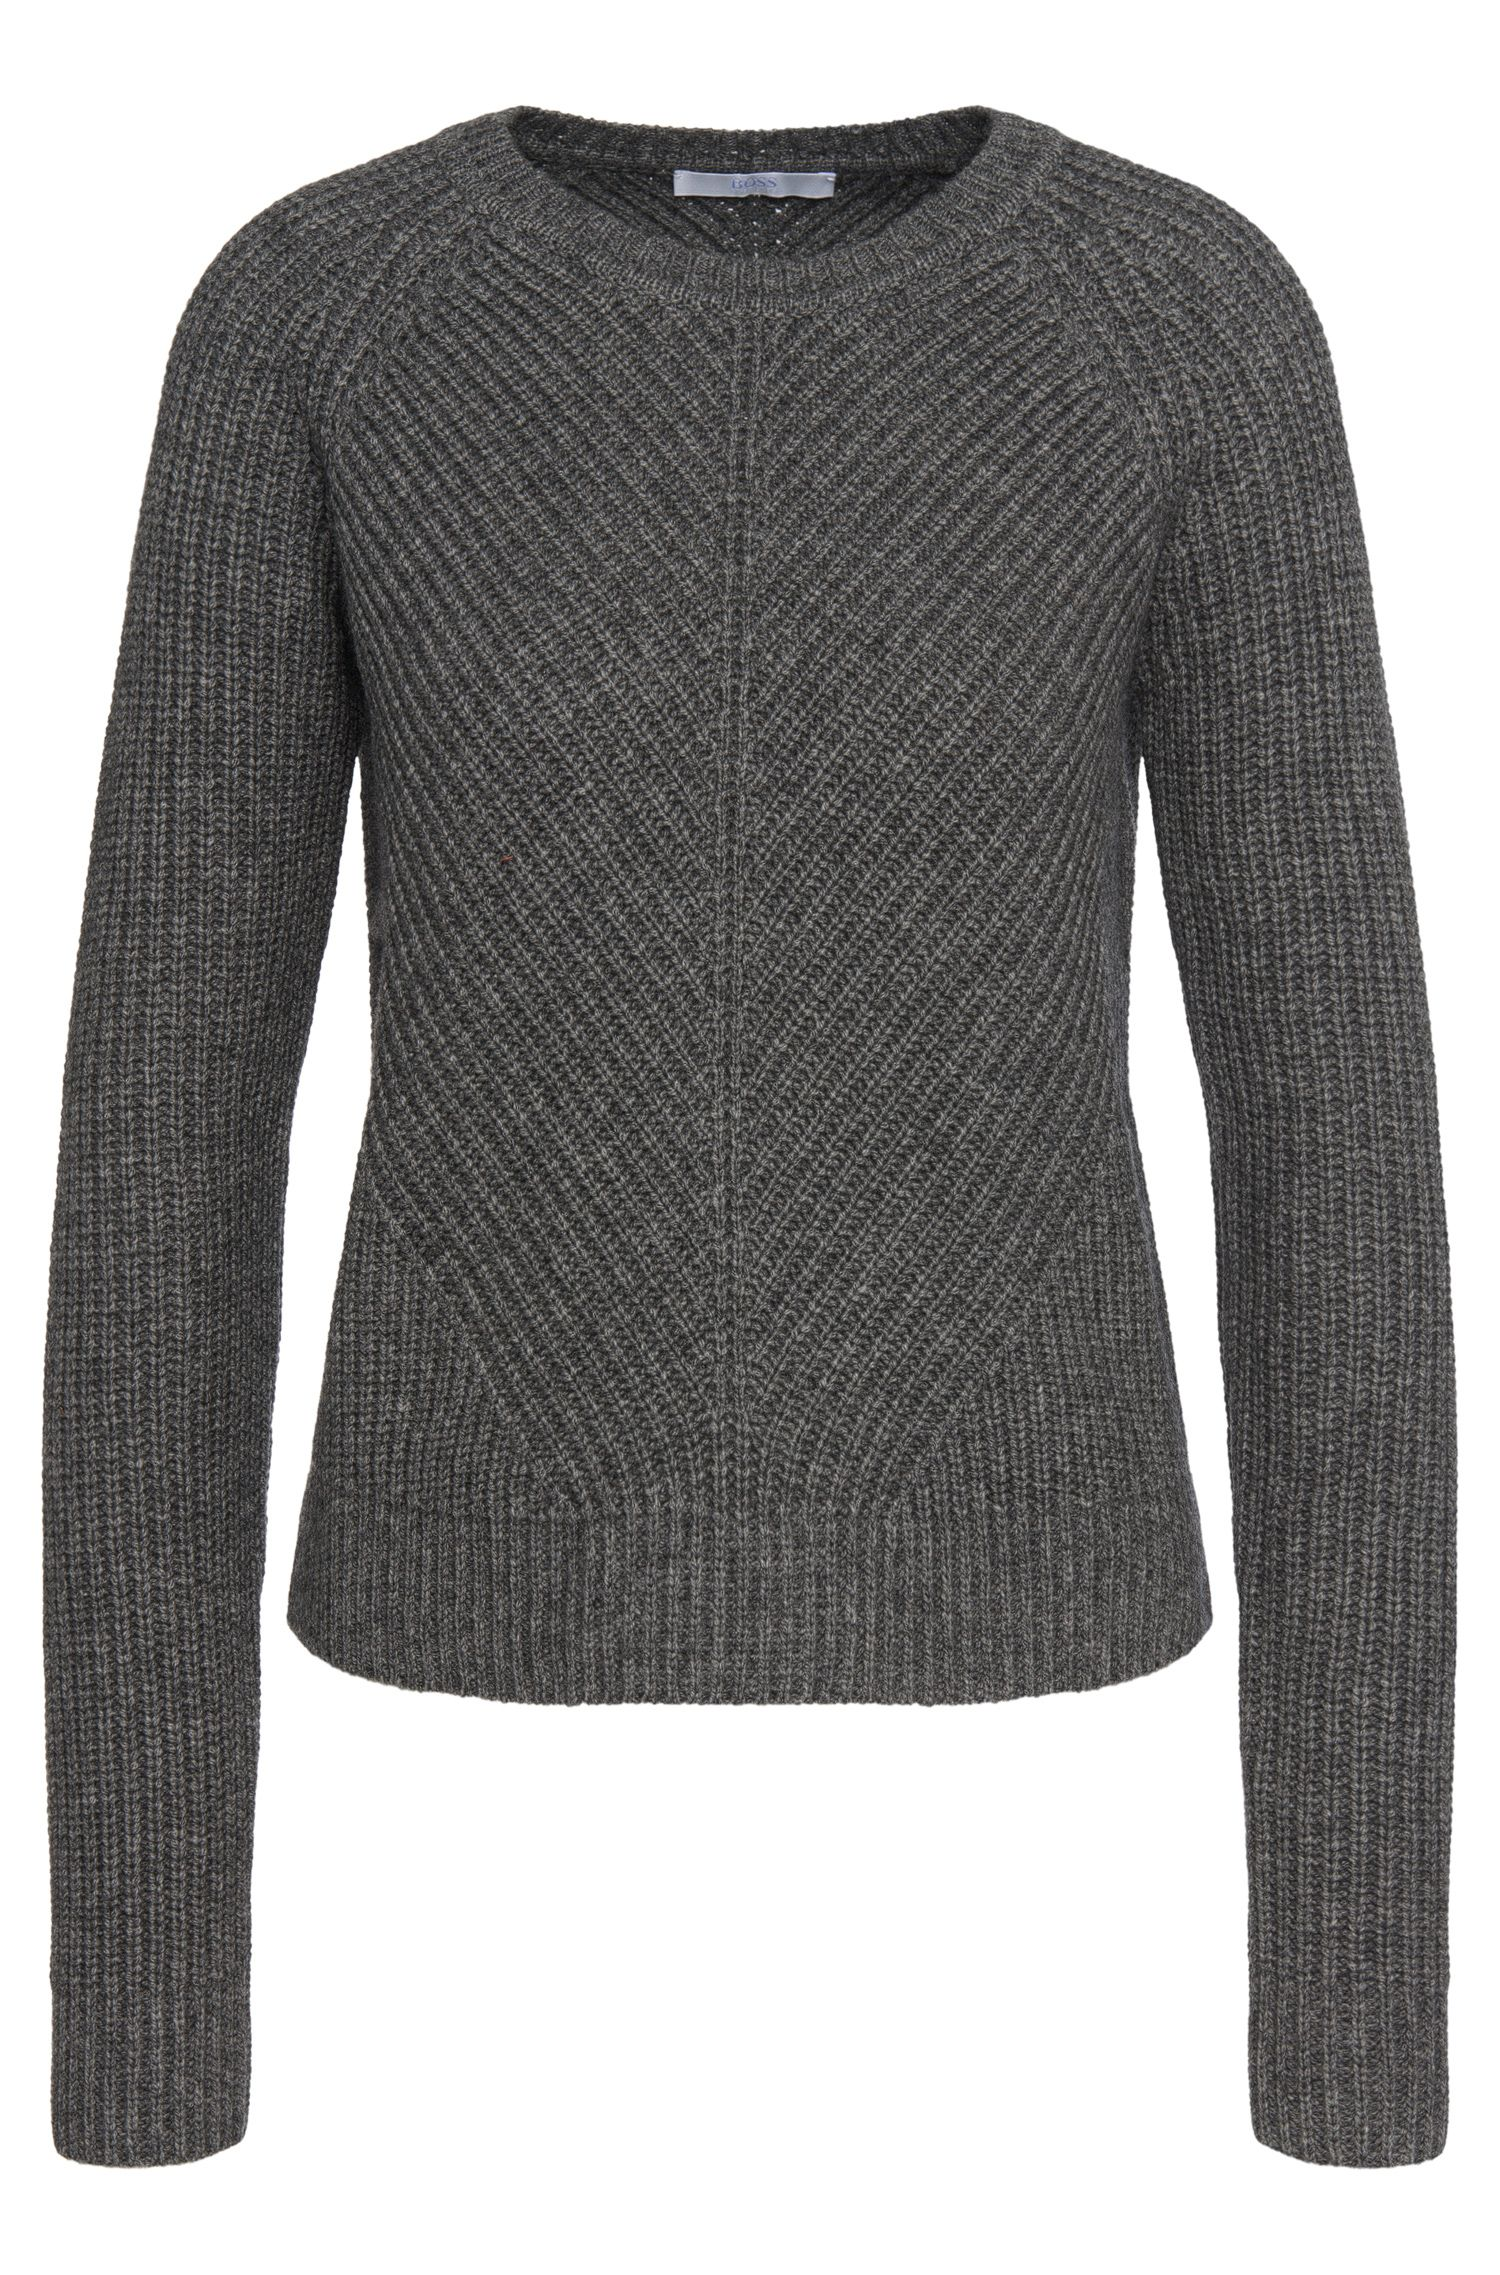 'Fareda' | Virgin Wool Cashmere Yak Ribbed Sweater